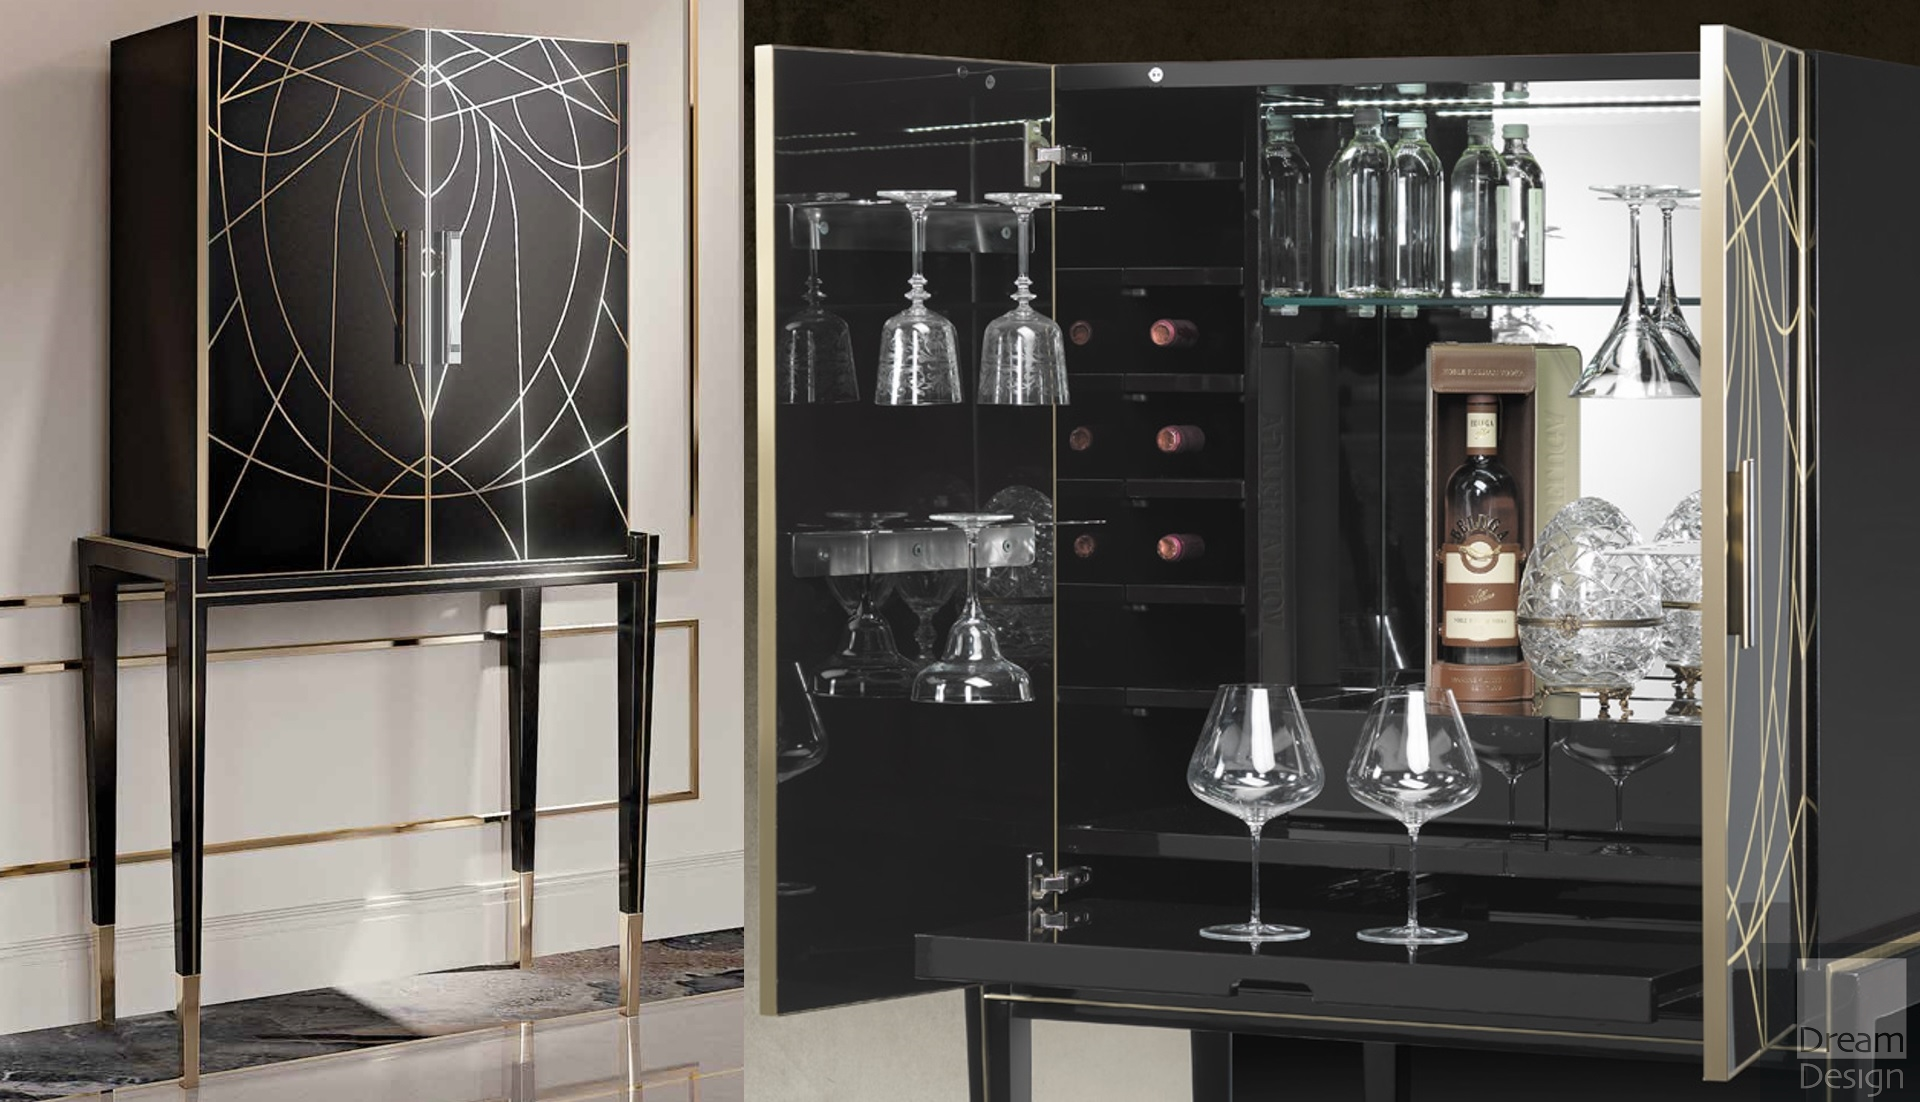 Reflex Angelo Belle Epoque Bar Cabinet Dream Design